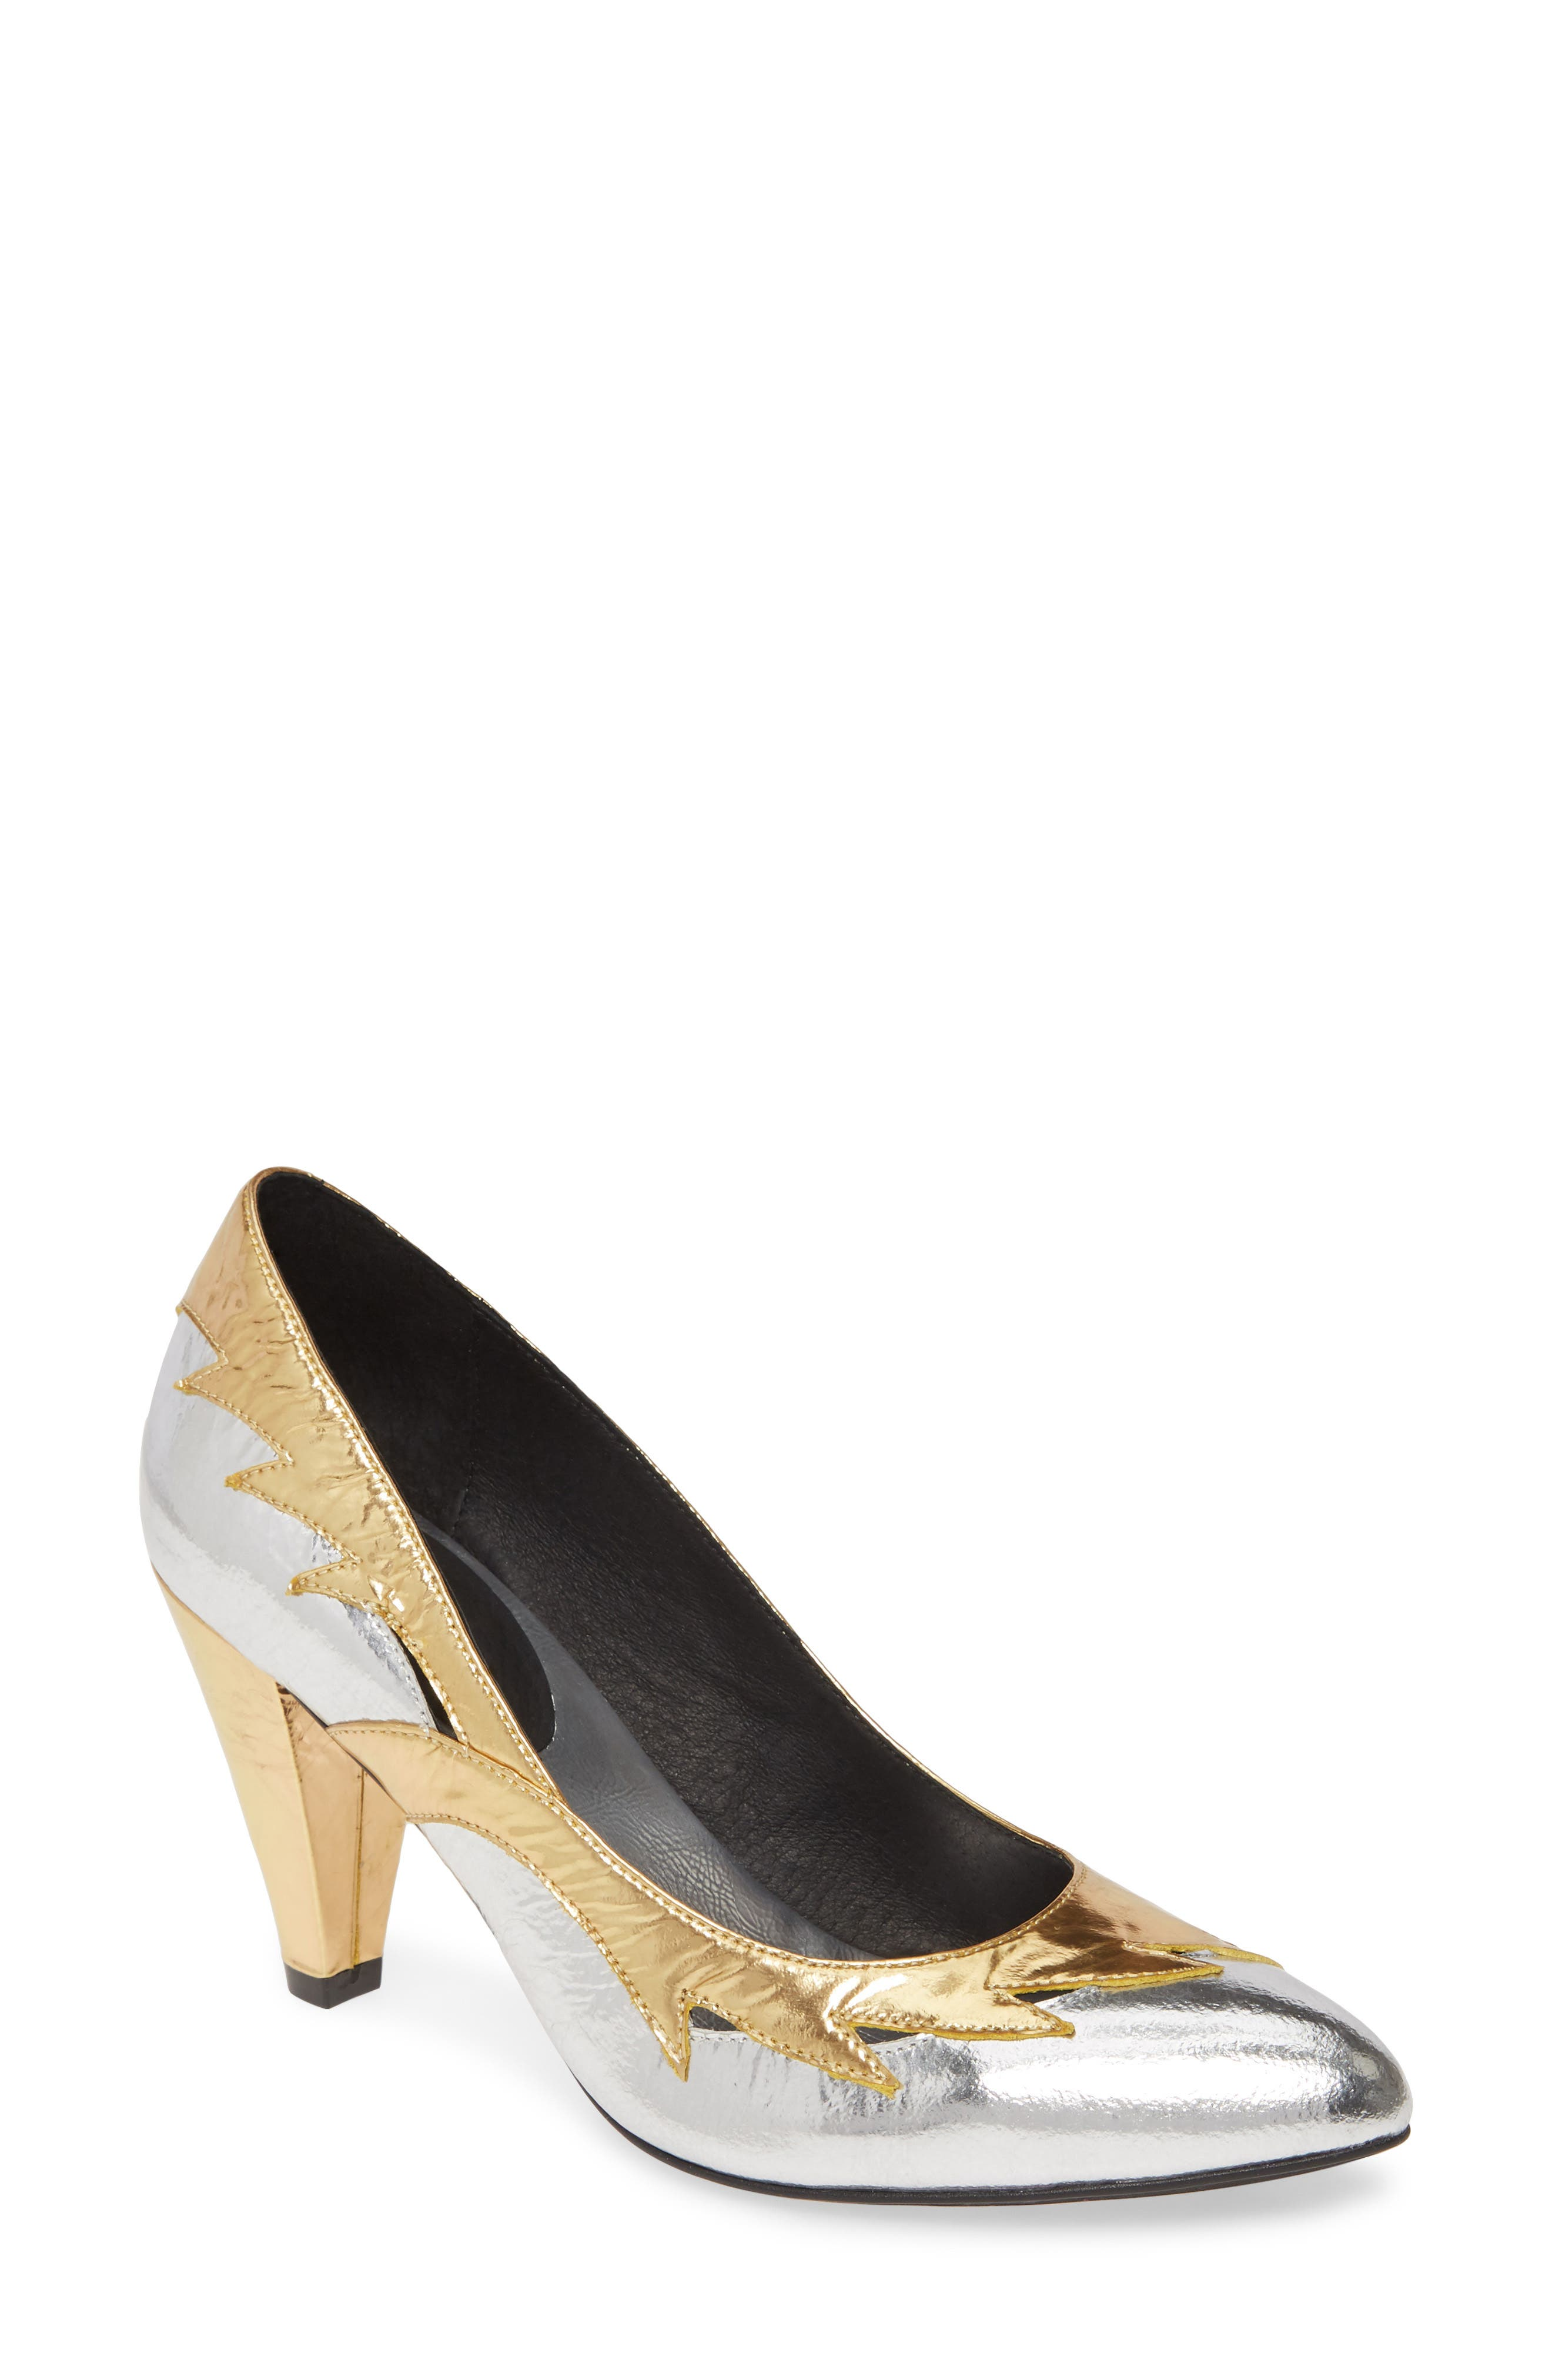 1920s Style Shoes Womens Jeffrey Campbell Cyndi Metallic Pump $129.95 AT vintagedancer.com